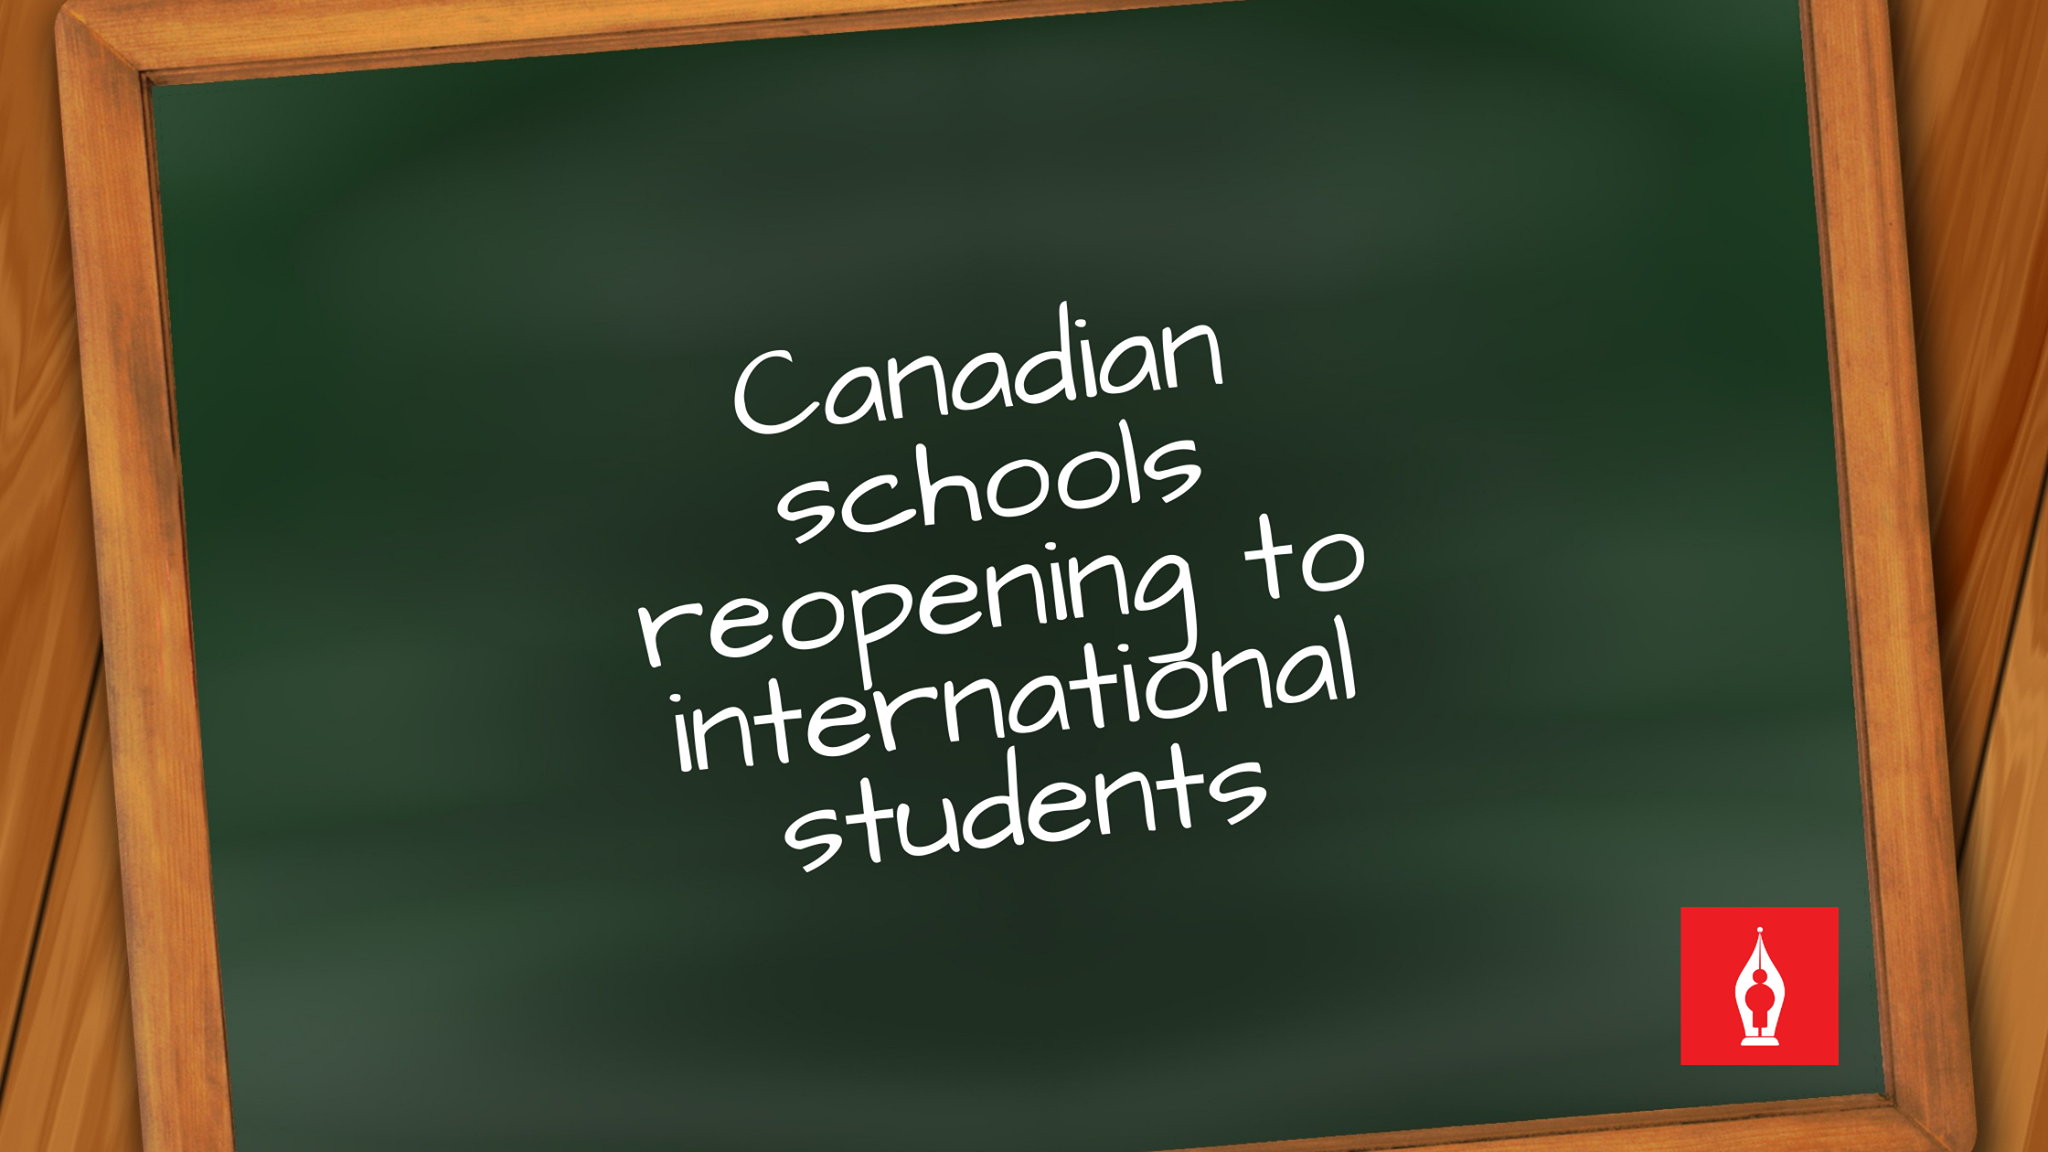 Canadian schools reopening to international students